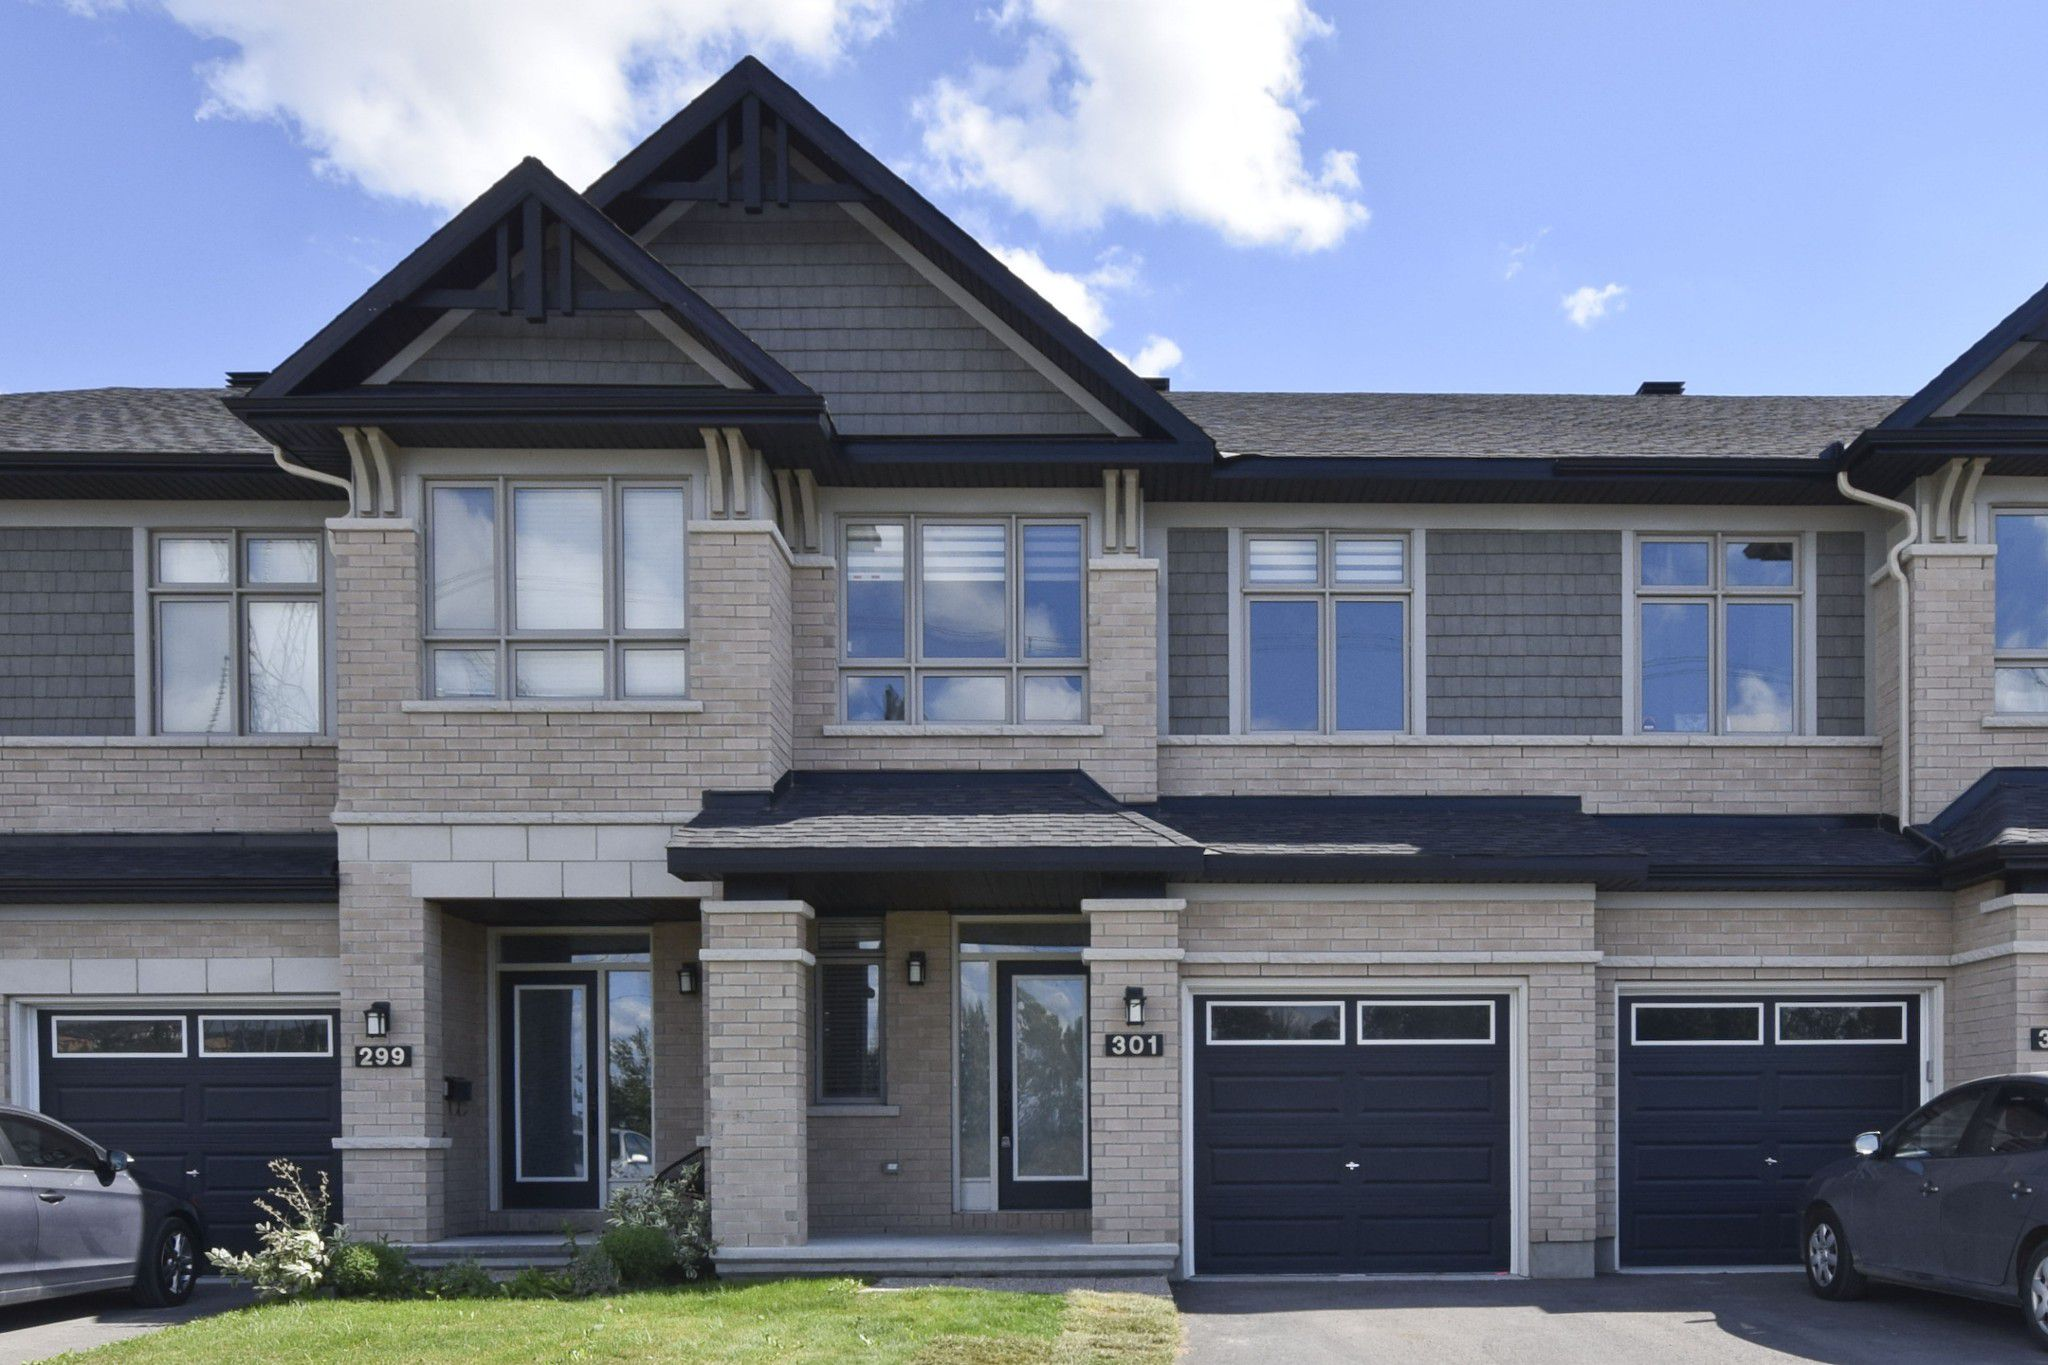 Main Photo: 301 Livery Street Stittsville Ottawa ON 255